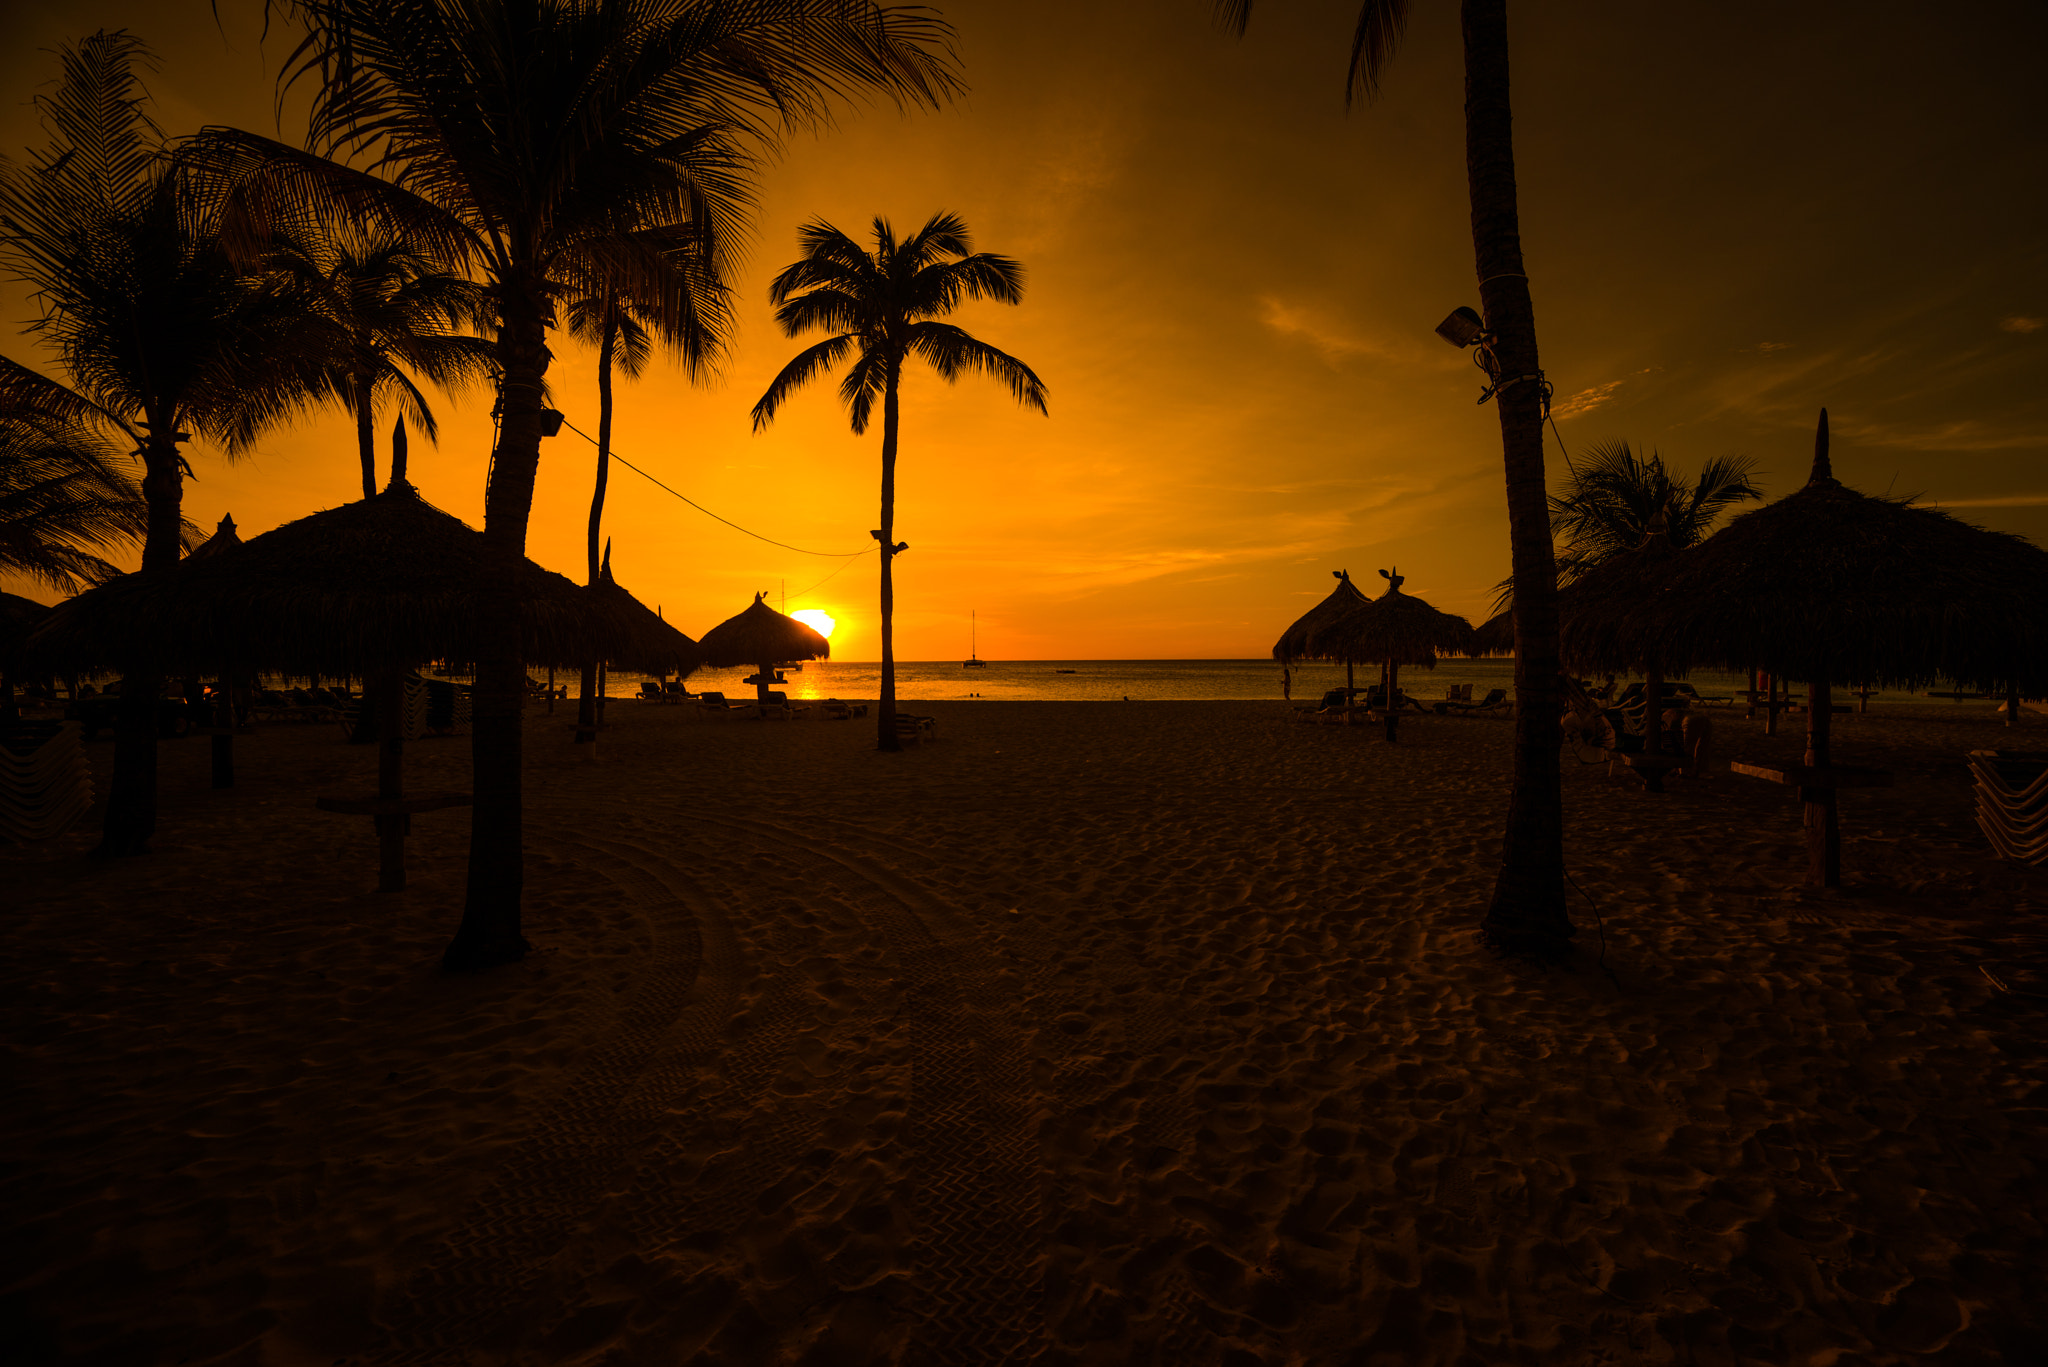 Photograph Aruba: Beach Sunset by Sven Bannuscher on 500px